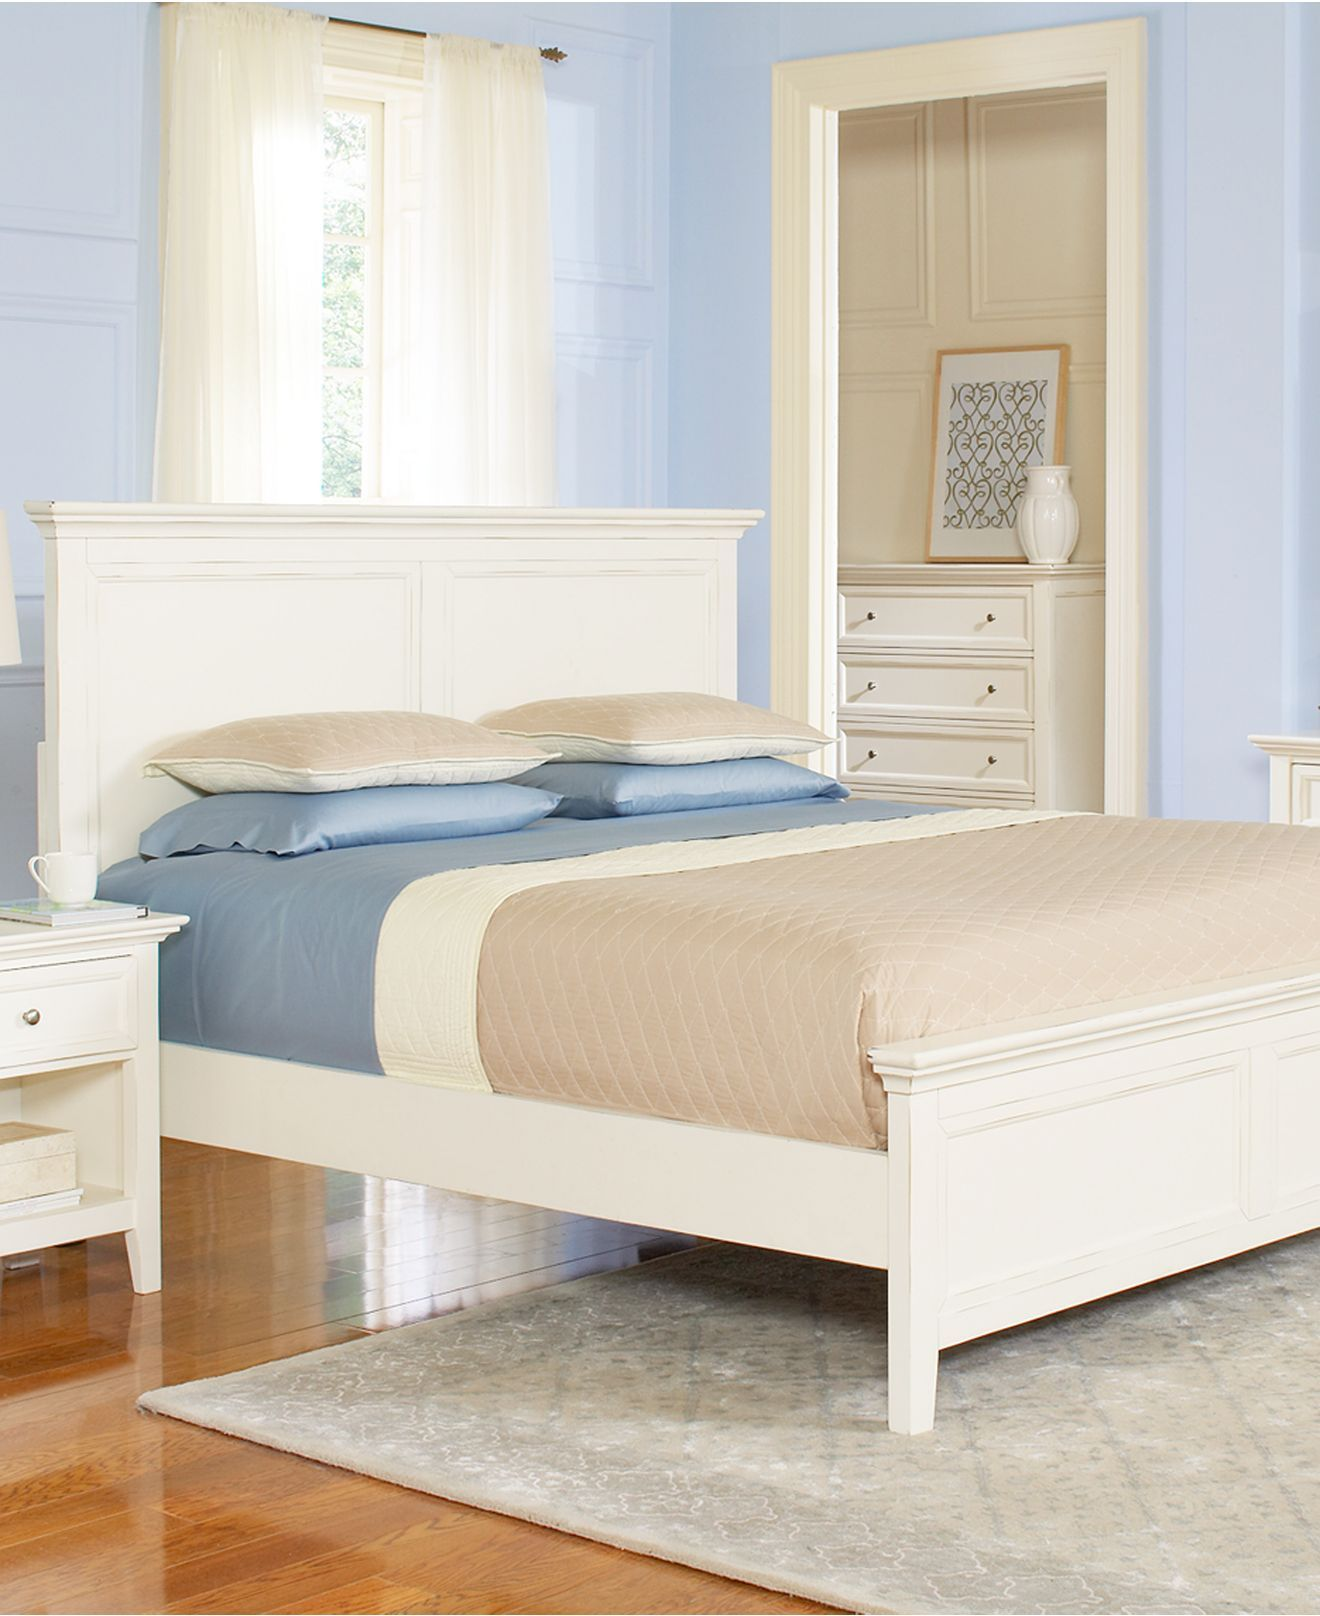 sanibel bedroom furniture collection created for macy's